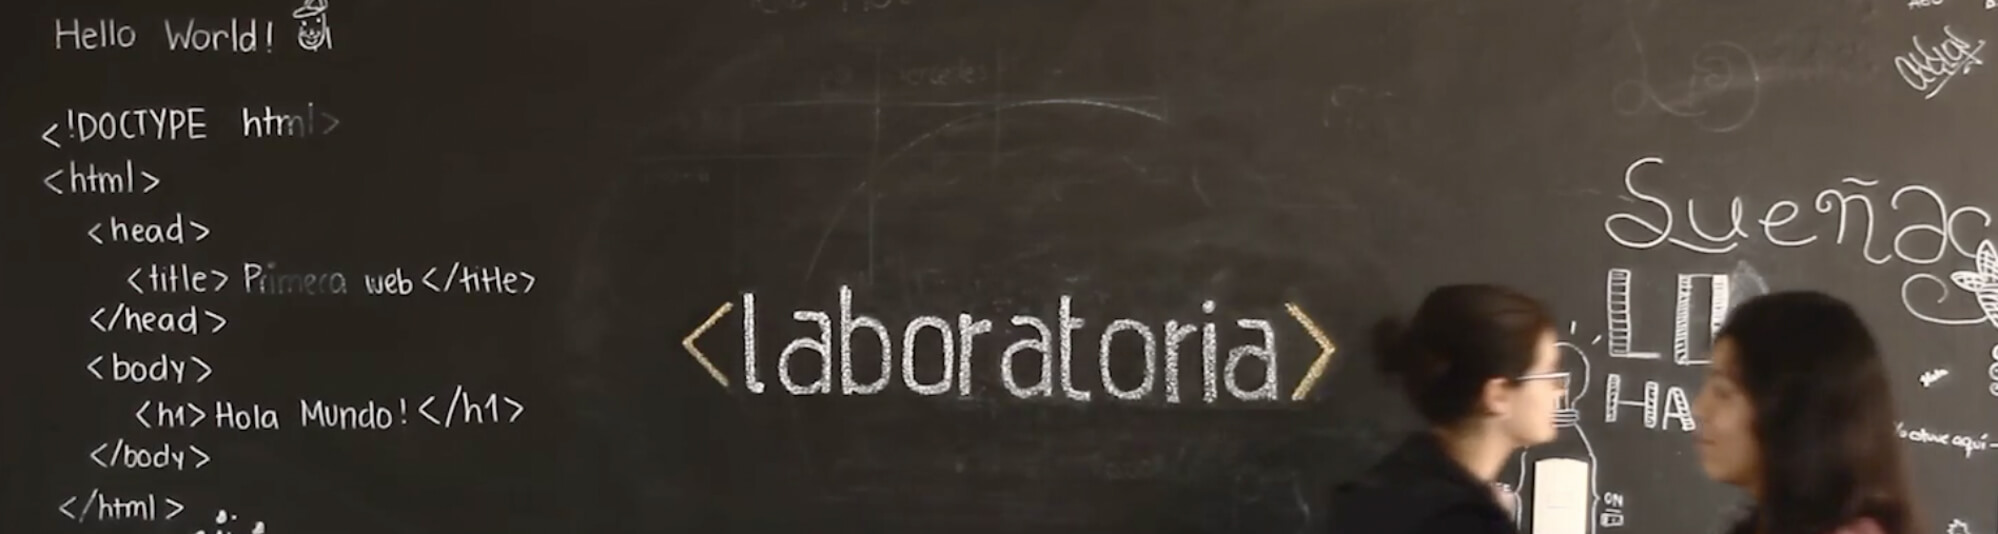 La Laboratoria, women, software, coders, CSR, Latin America